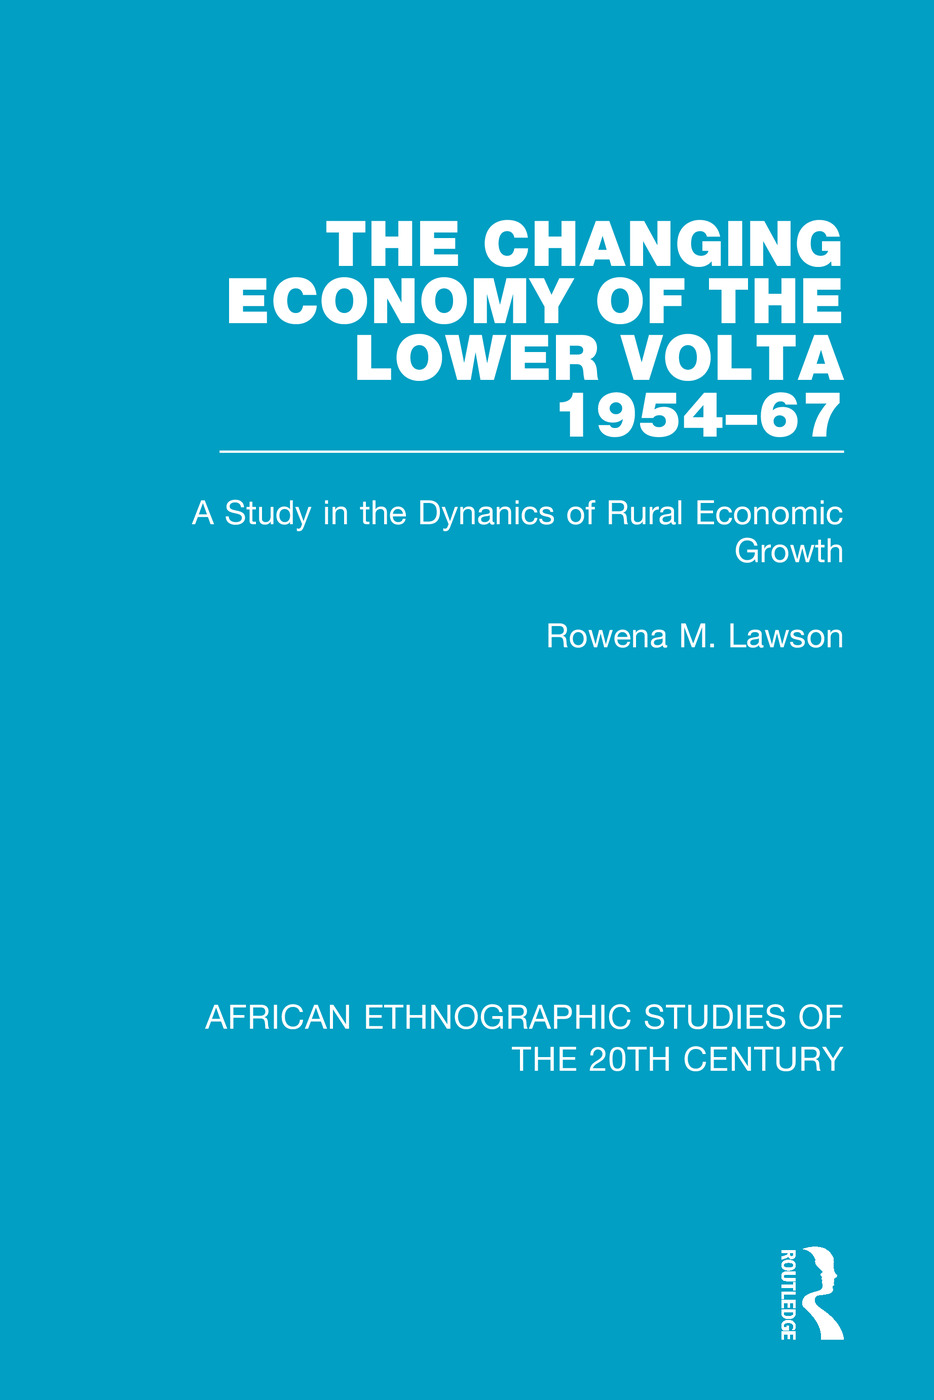 The Changing Economy of the Lower Volta 1954-67: A Study in the Dynanics of Rural Economic Growth, 1st Edition (Paperback) book cover